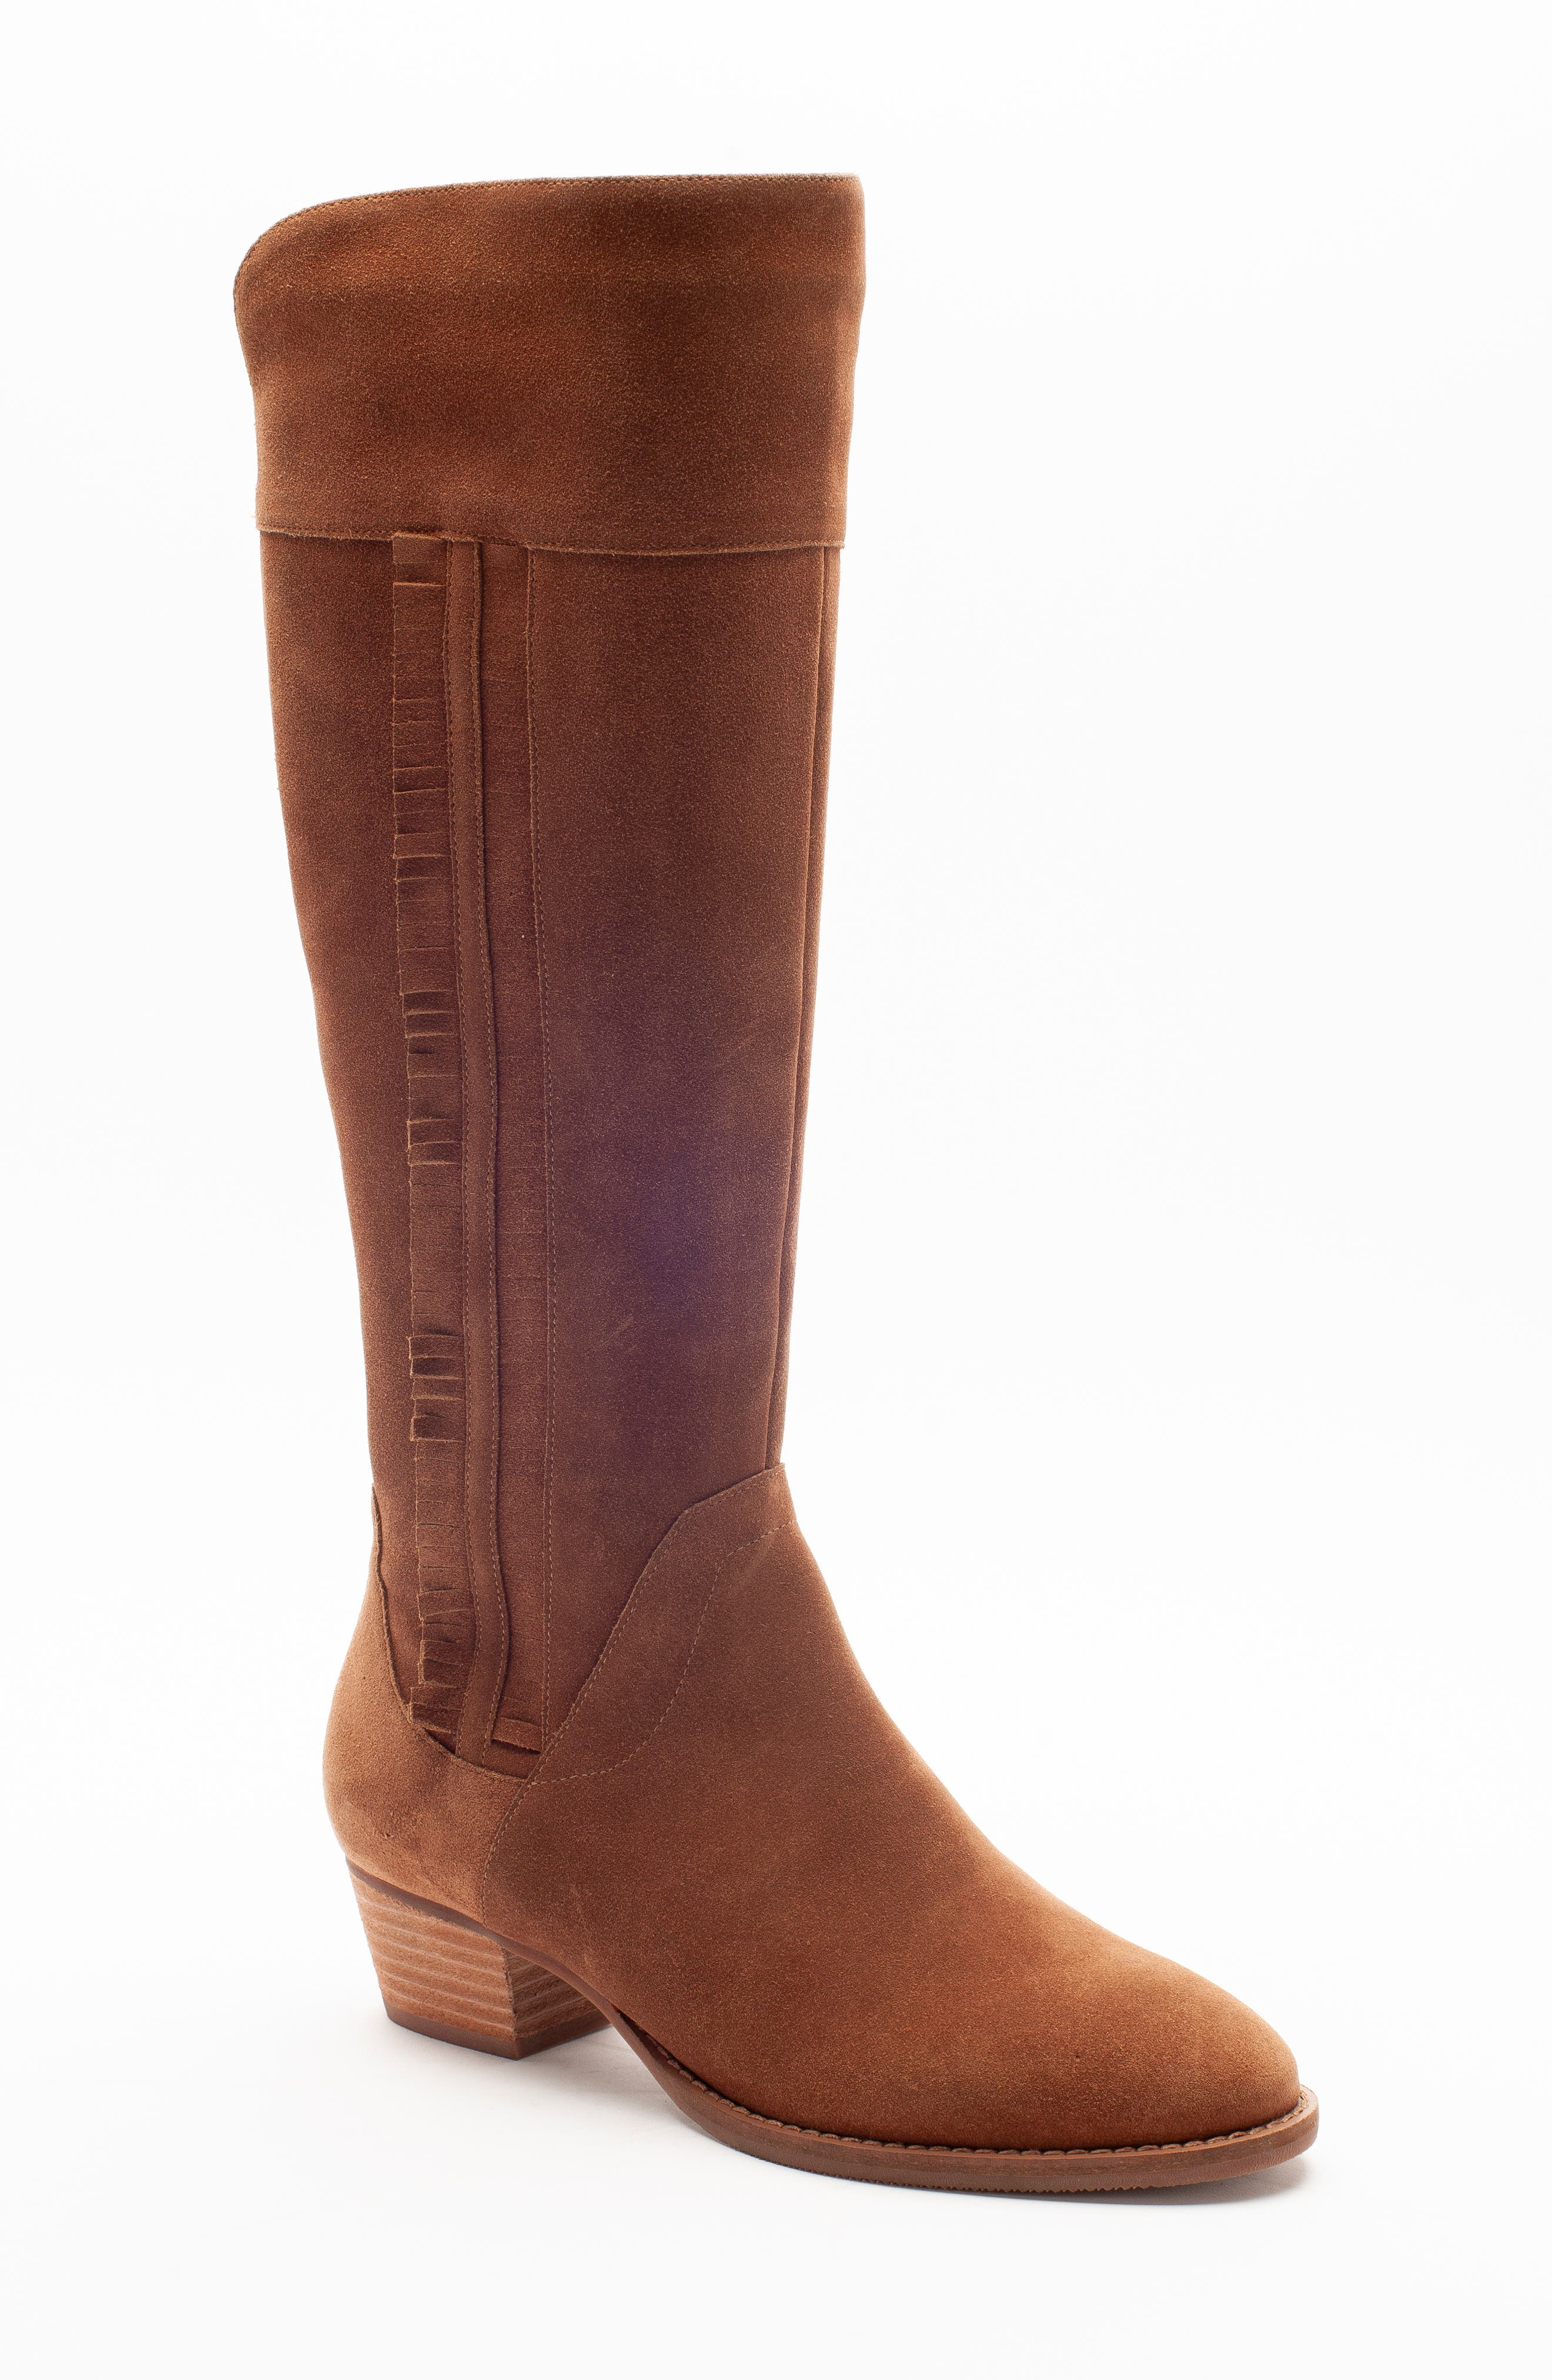 Blondo Nestle Waterproof Knee High Boot- Brown